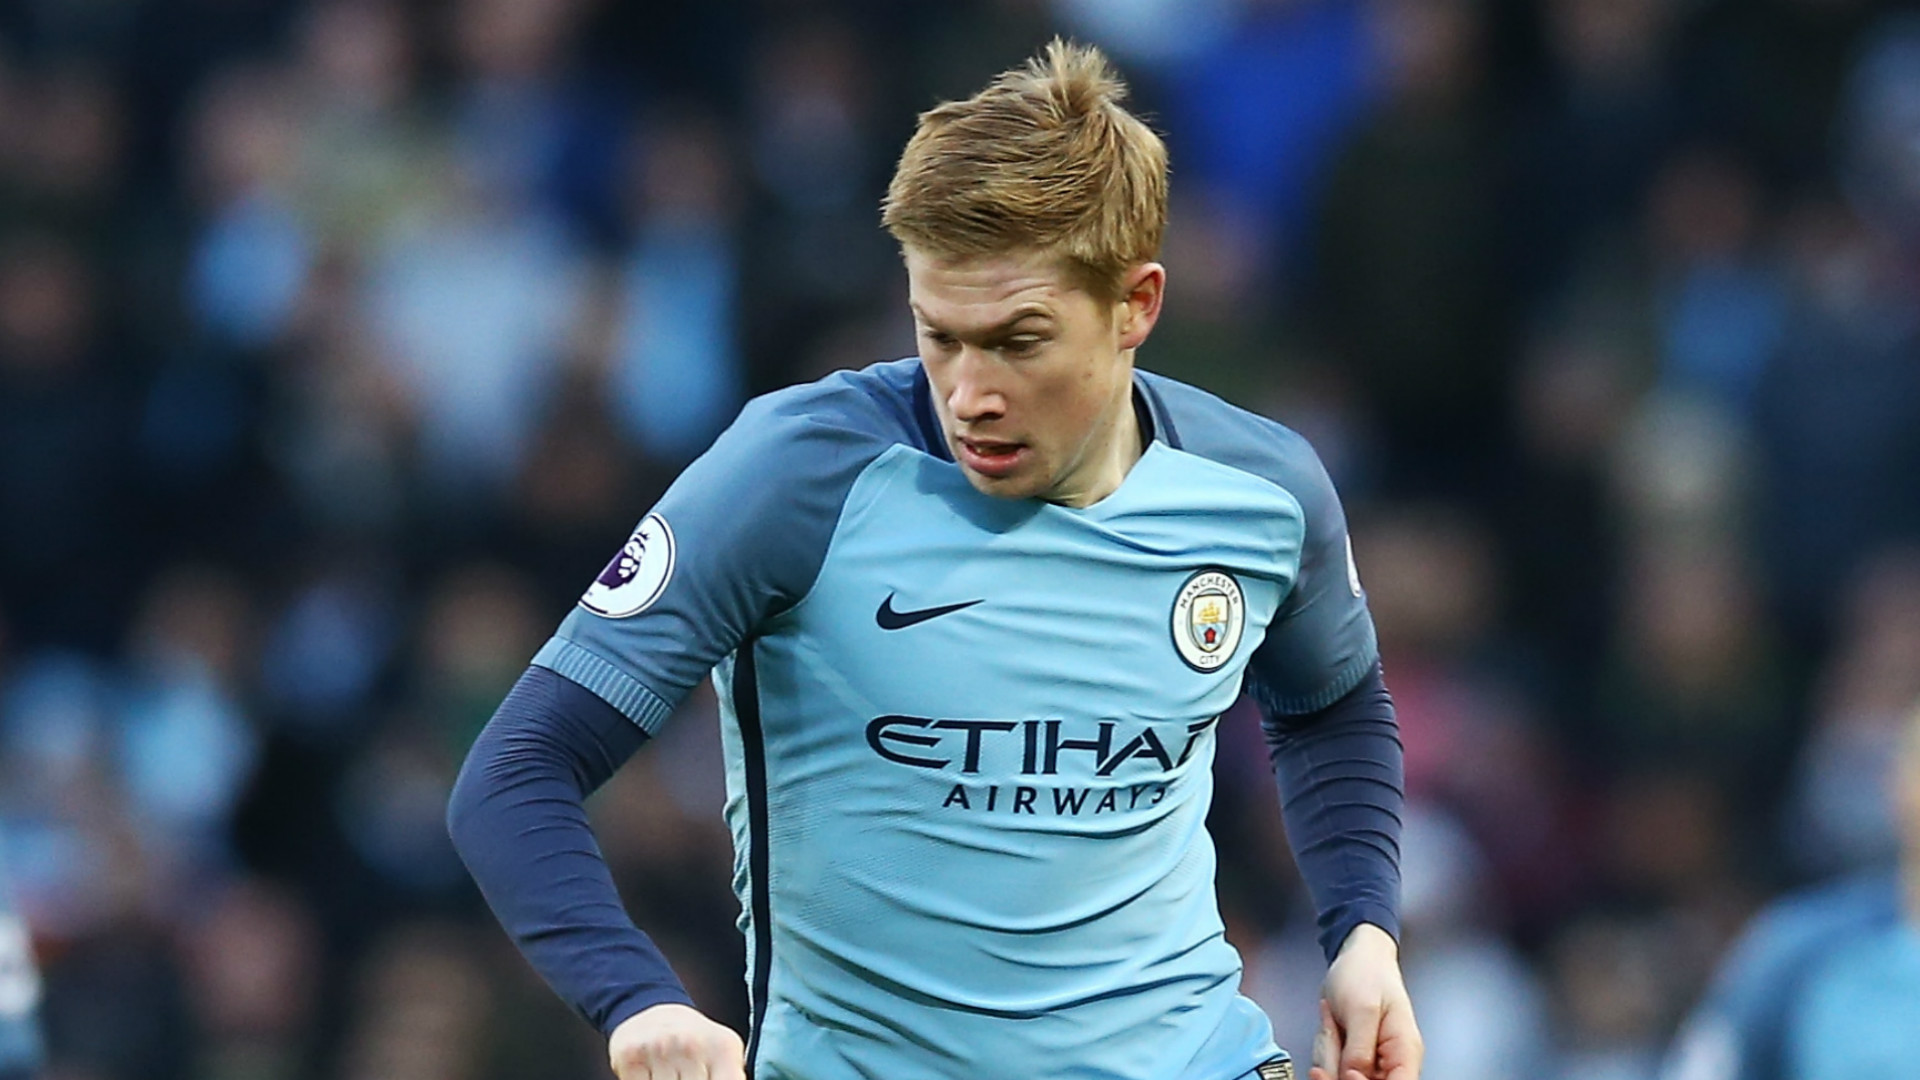 Kevin De Bruyne Wallpapers (76+ Background Pictures